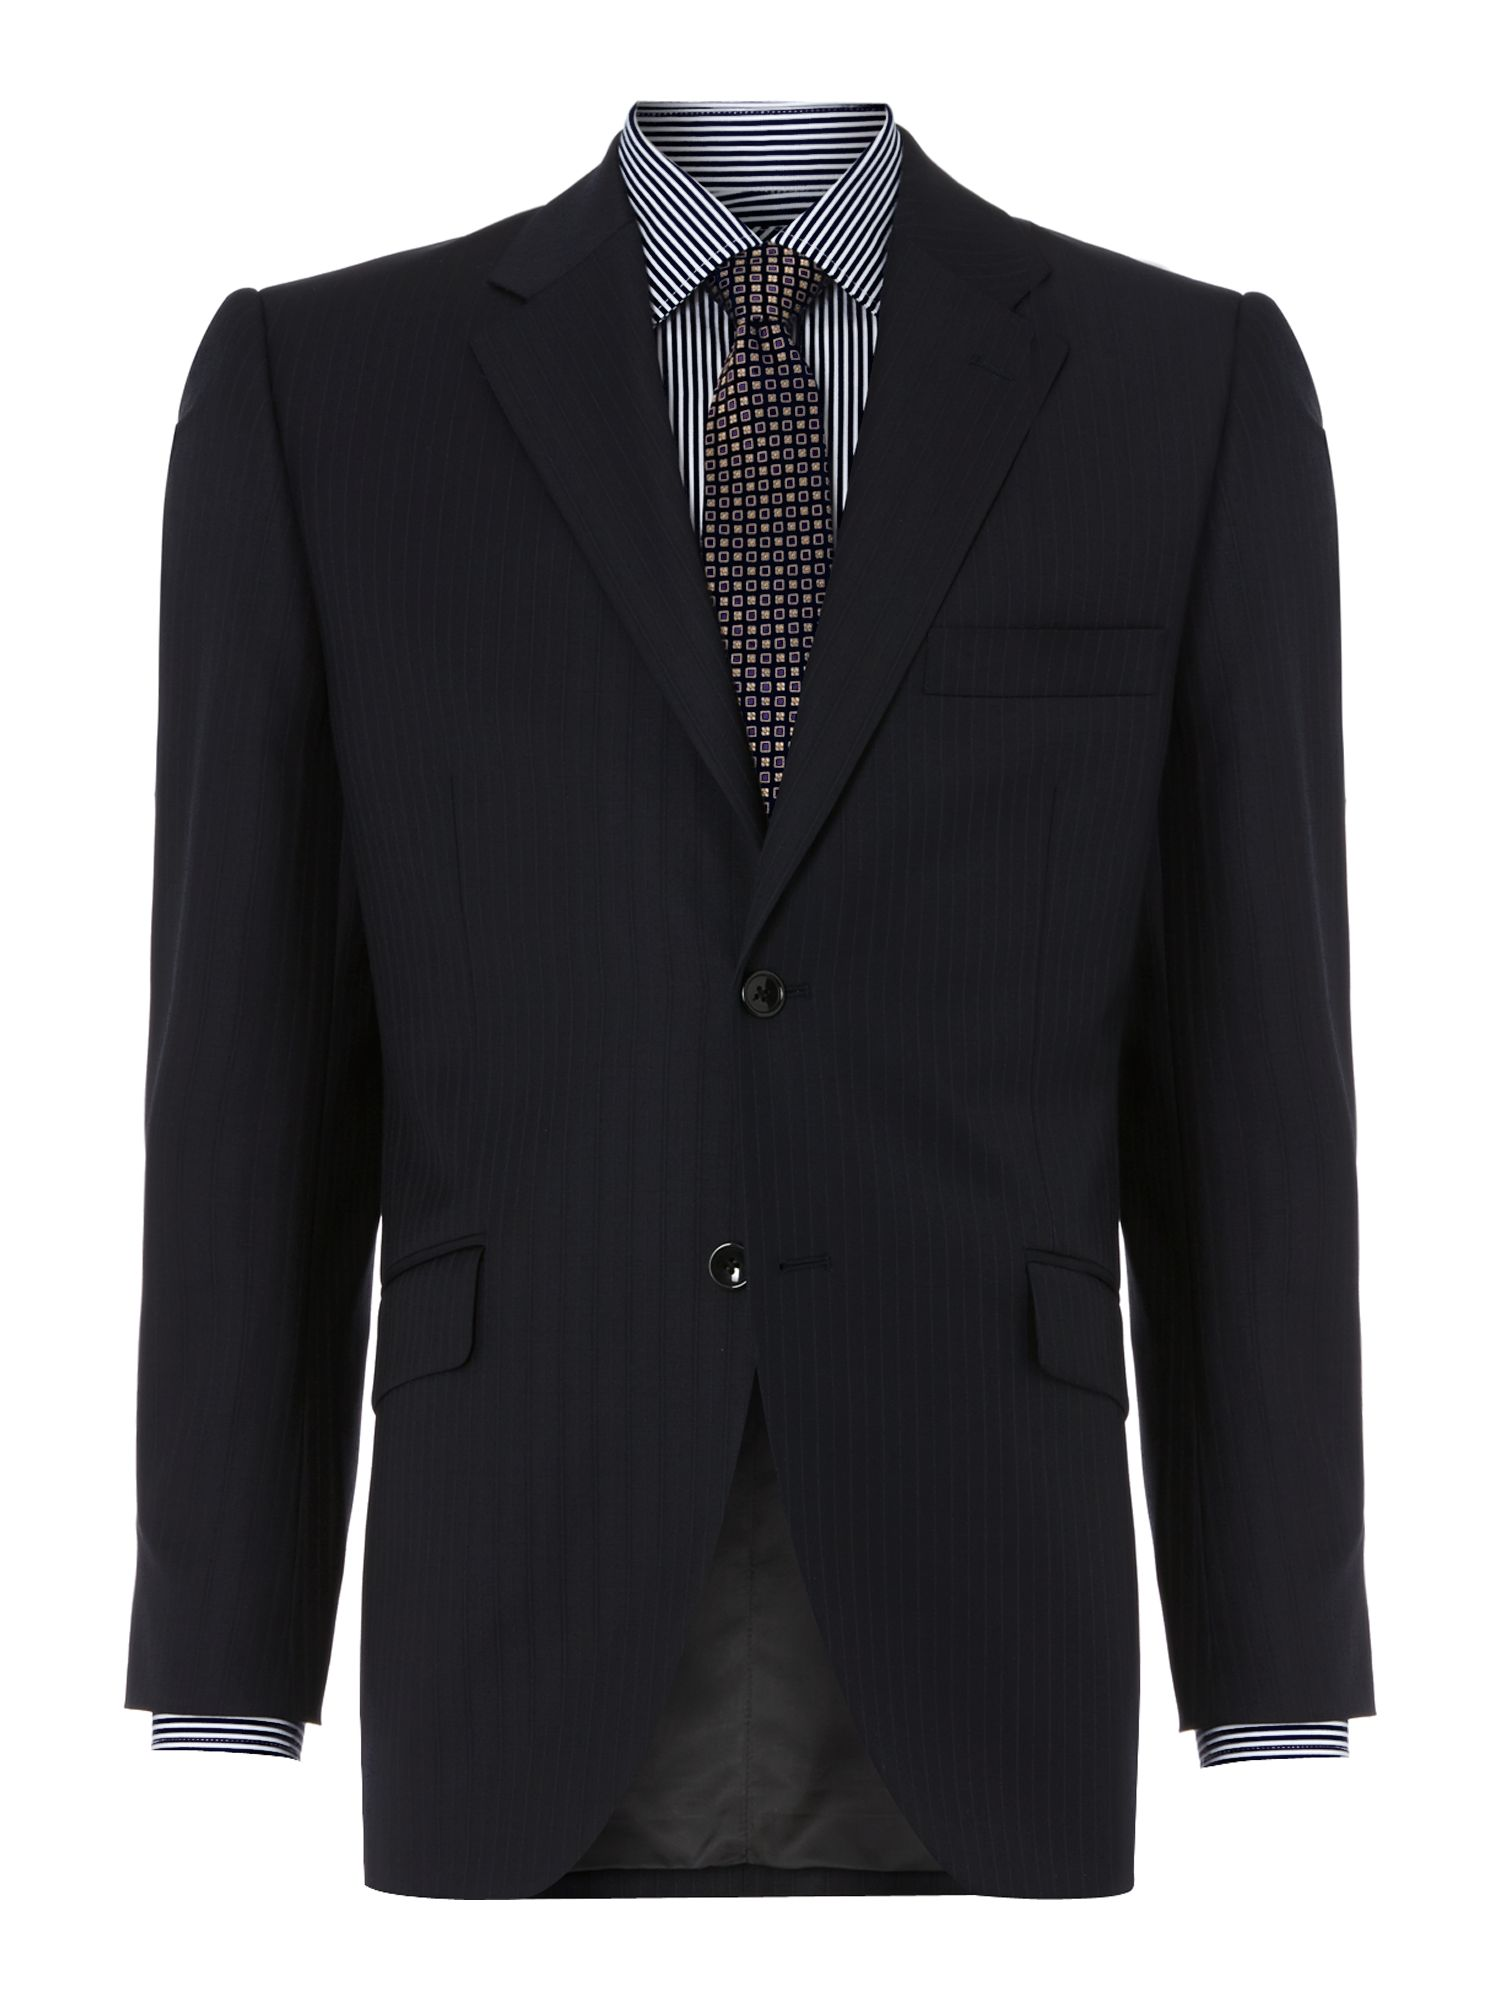 Whitehurst Twill Pinstripe Suit Jacket